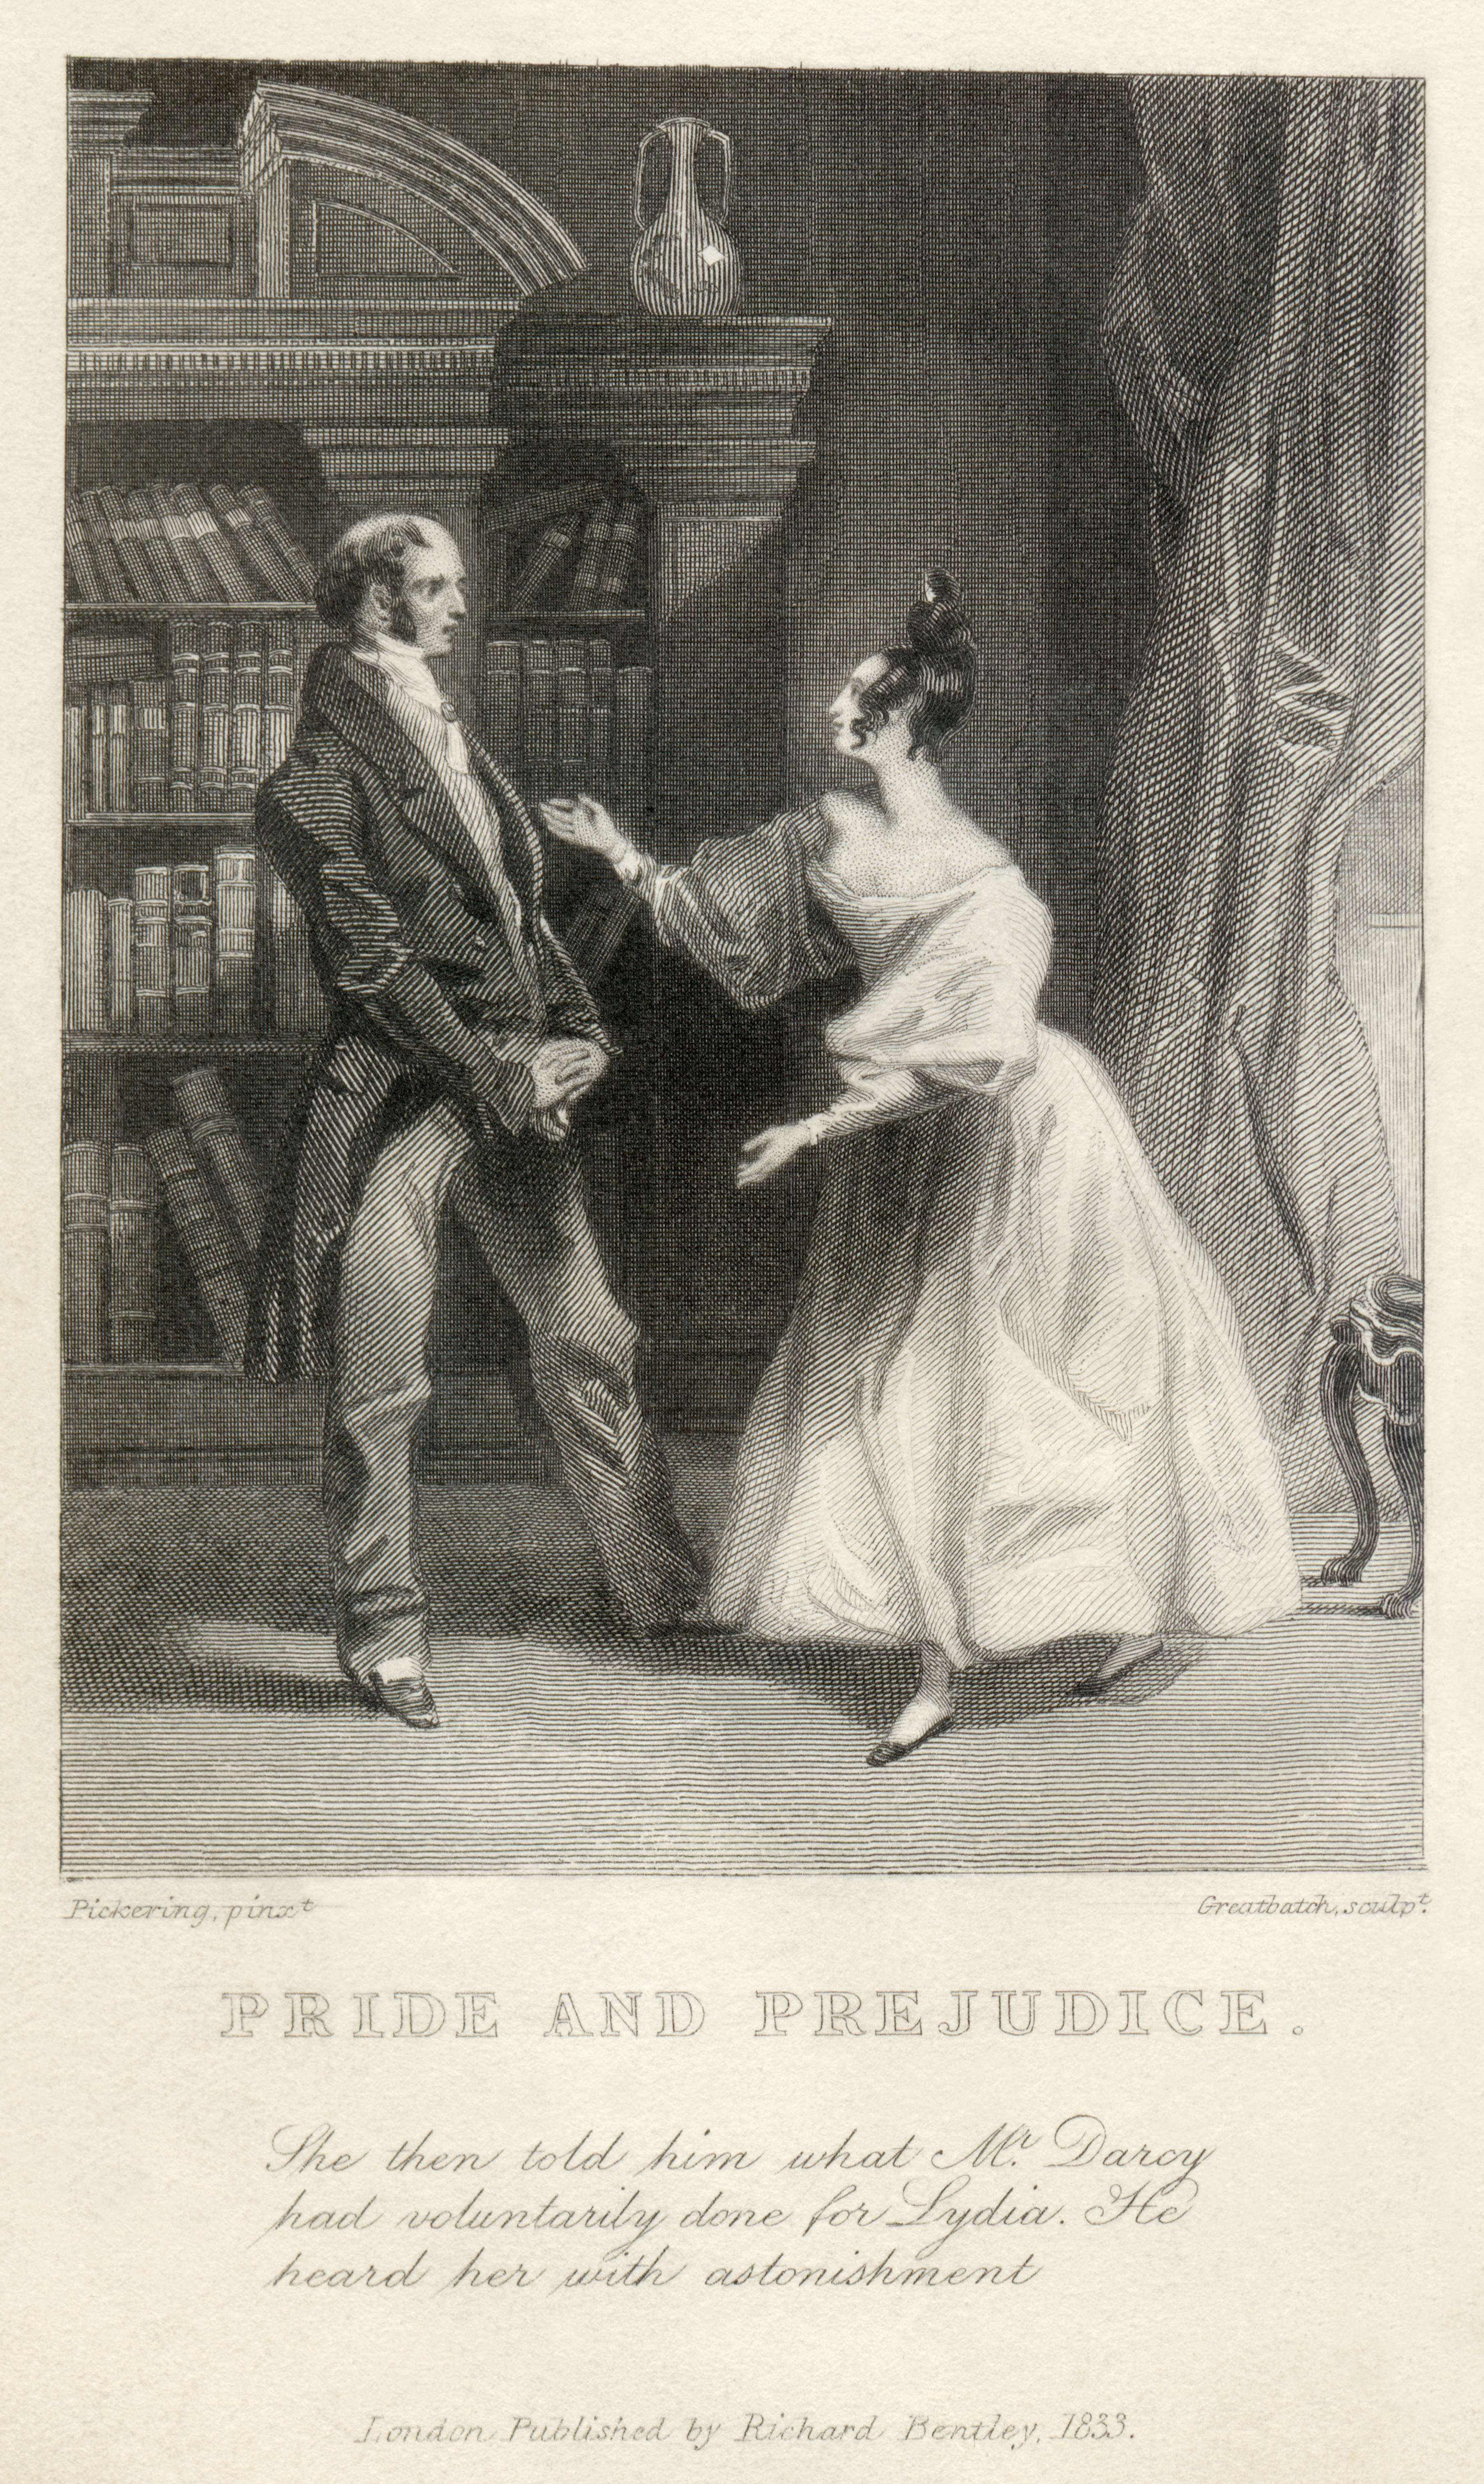 pride and prejudice elizabeth tells her father that darcy was responsible for uniting lydia and wickham one of the two earliest illustrations of pride and prejudice